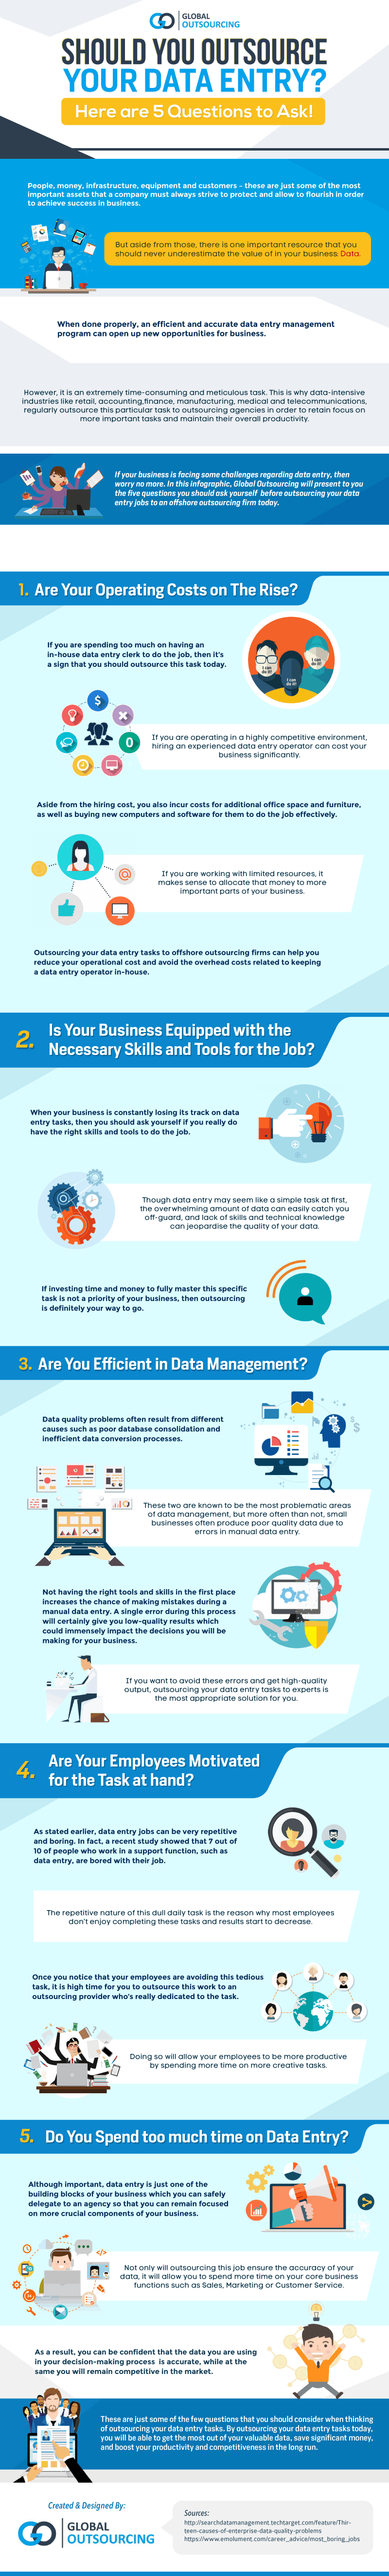 Should-You-Outsource-Your-Data-Entry infographic